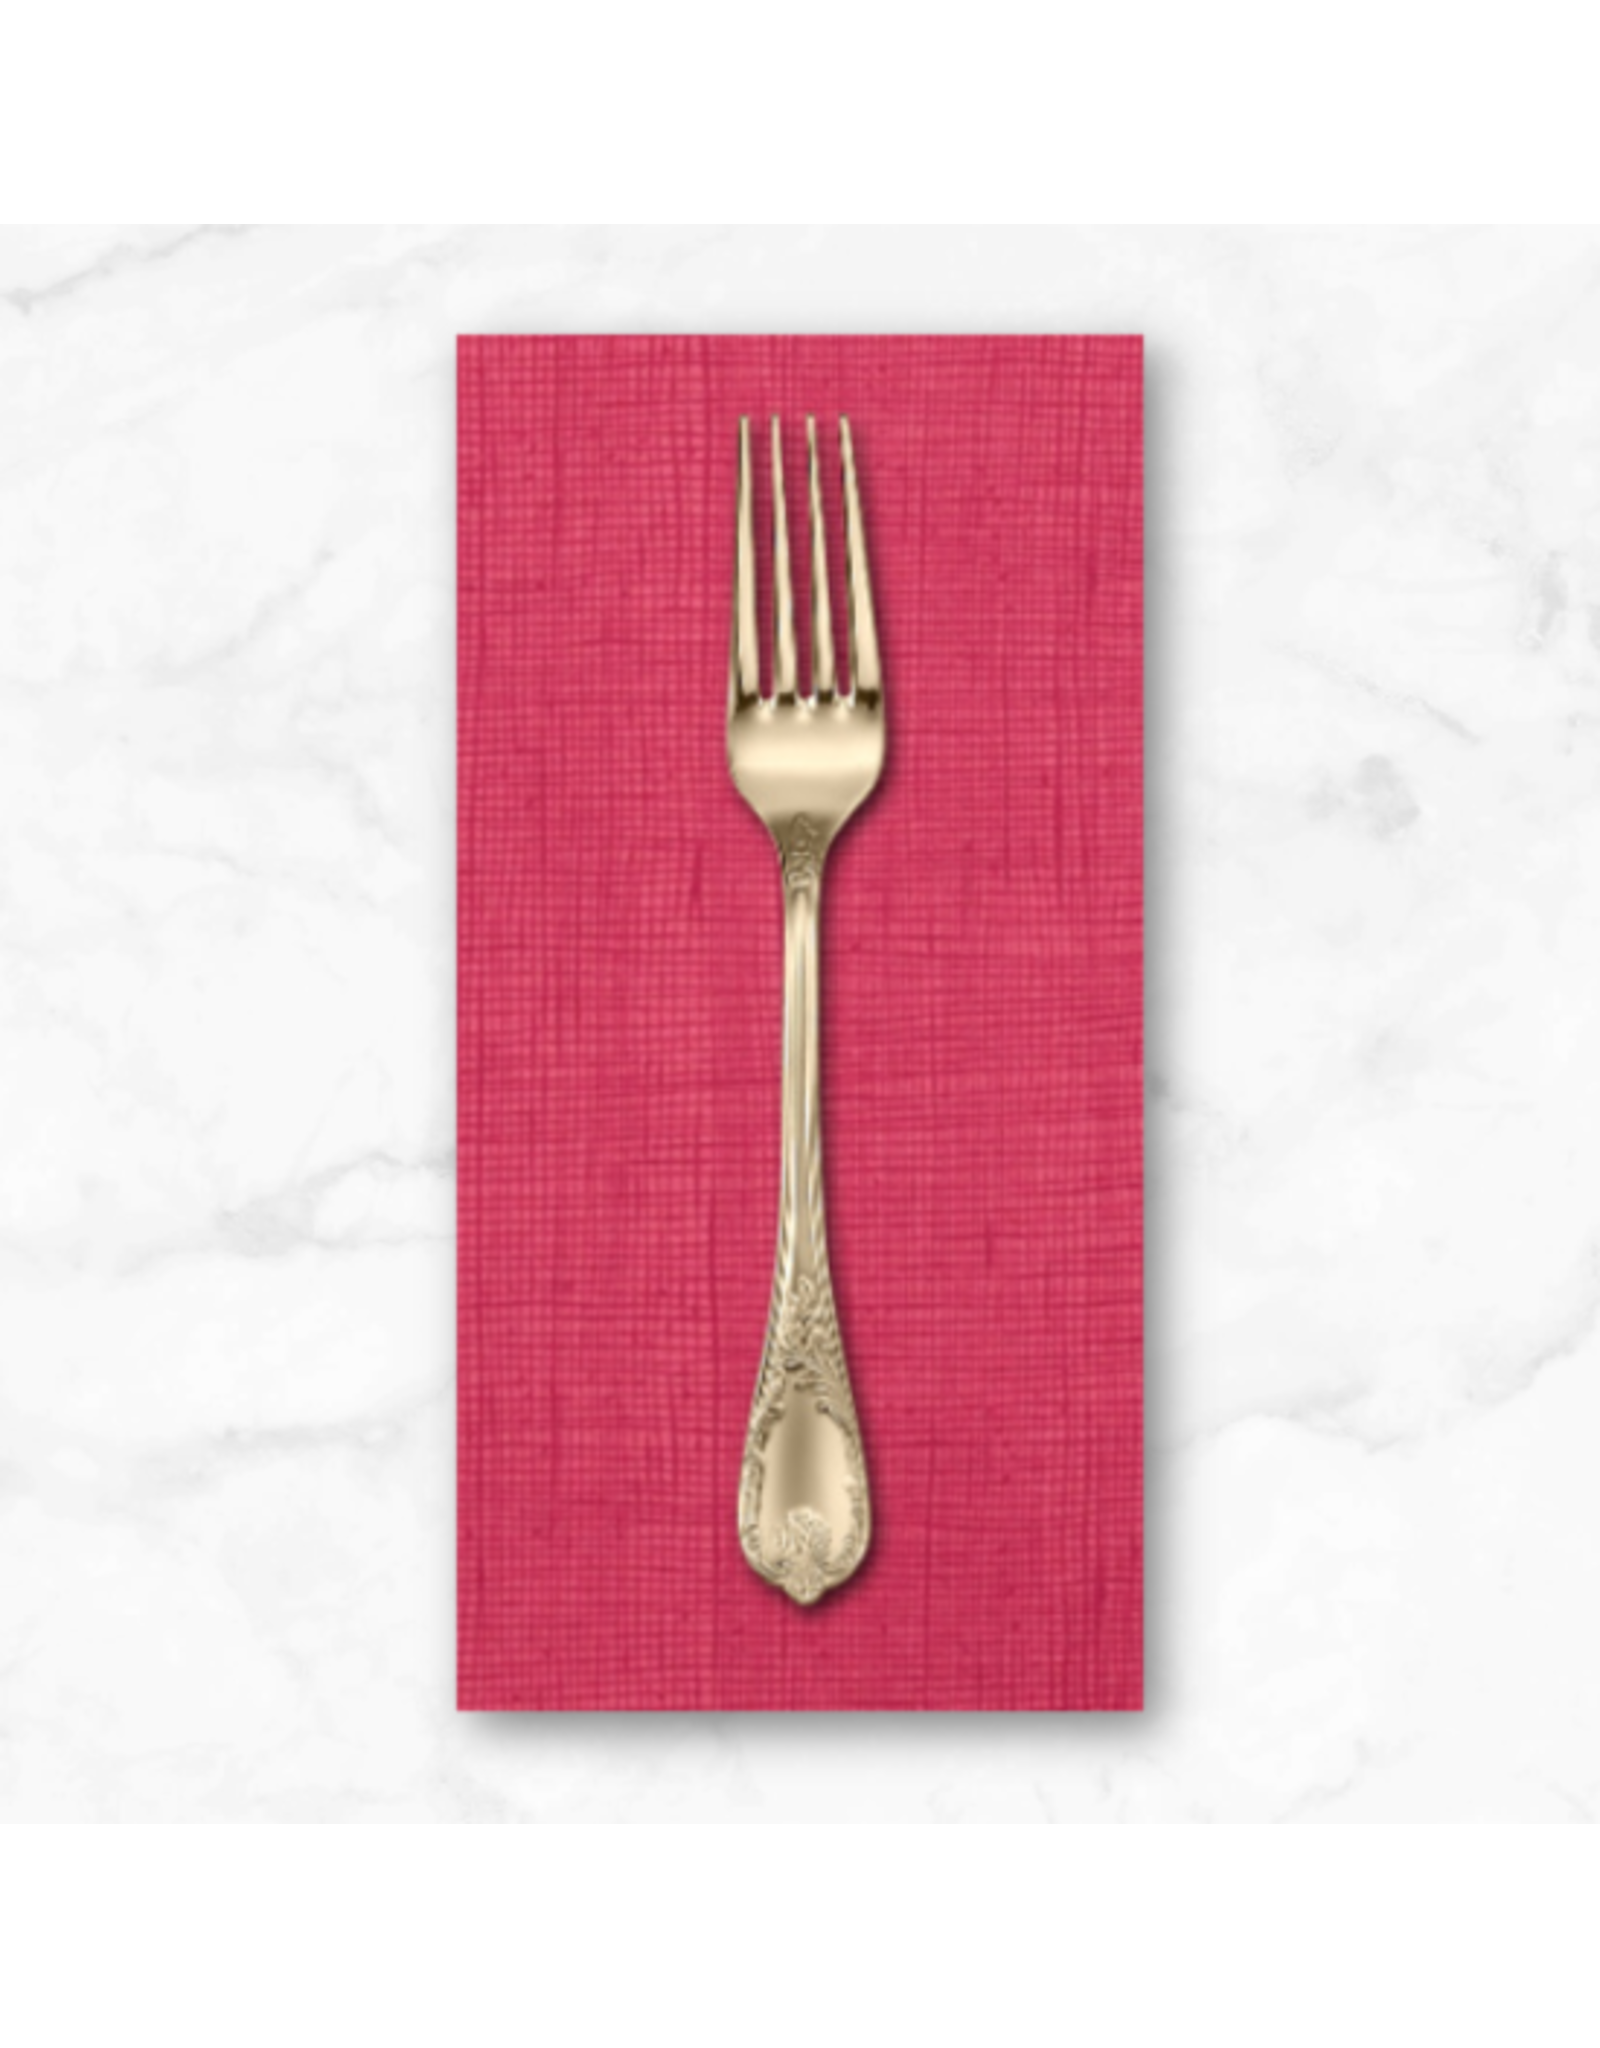 PD's Alexander Henry Collection Heath in Rose Pink, Dinner Napkin